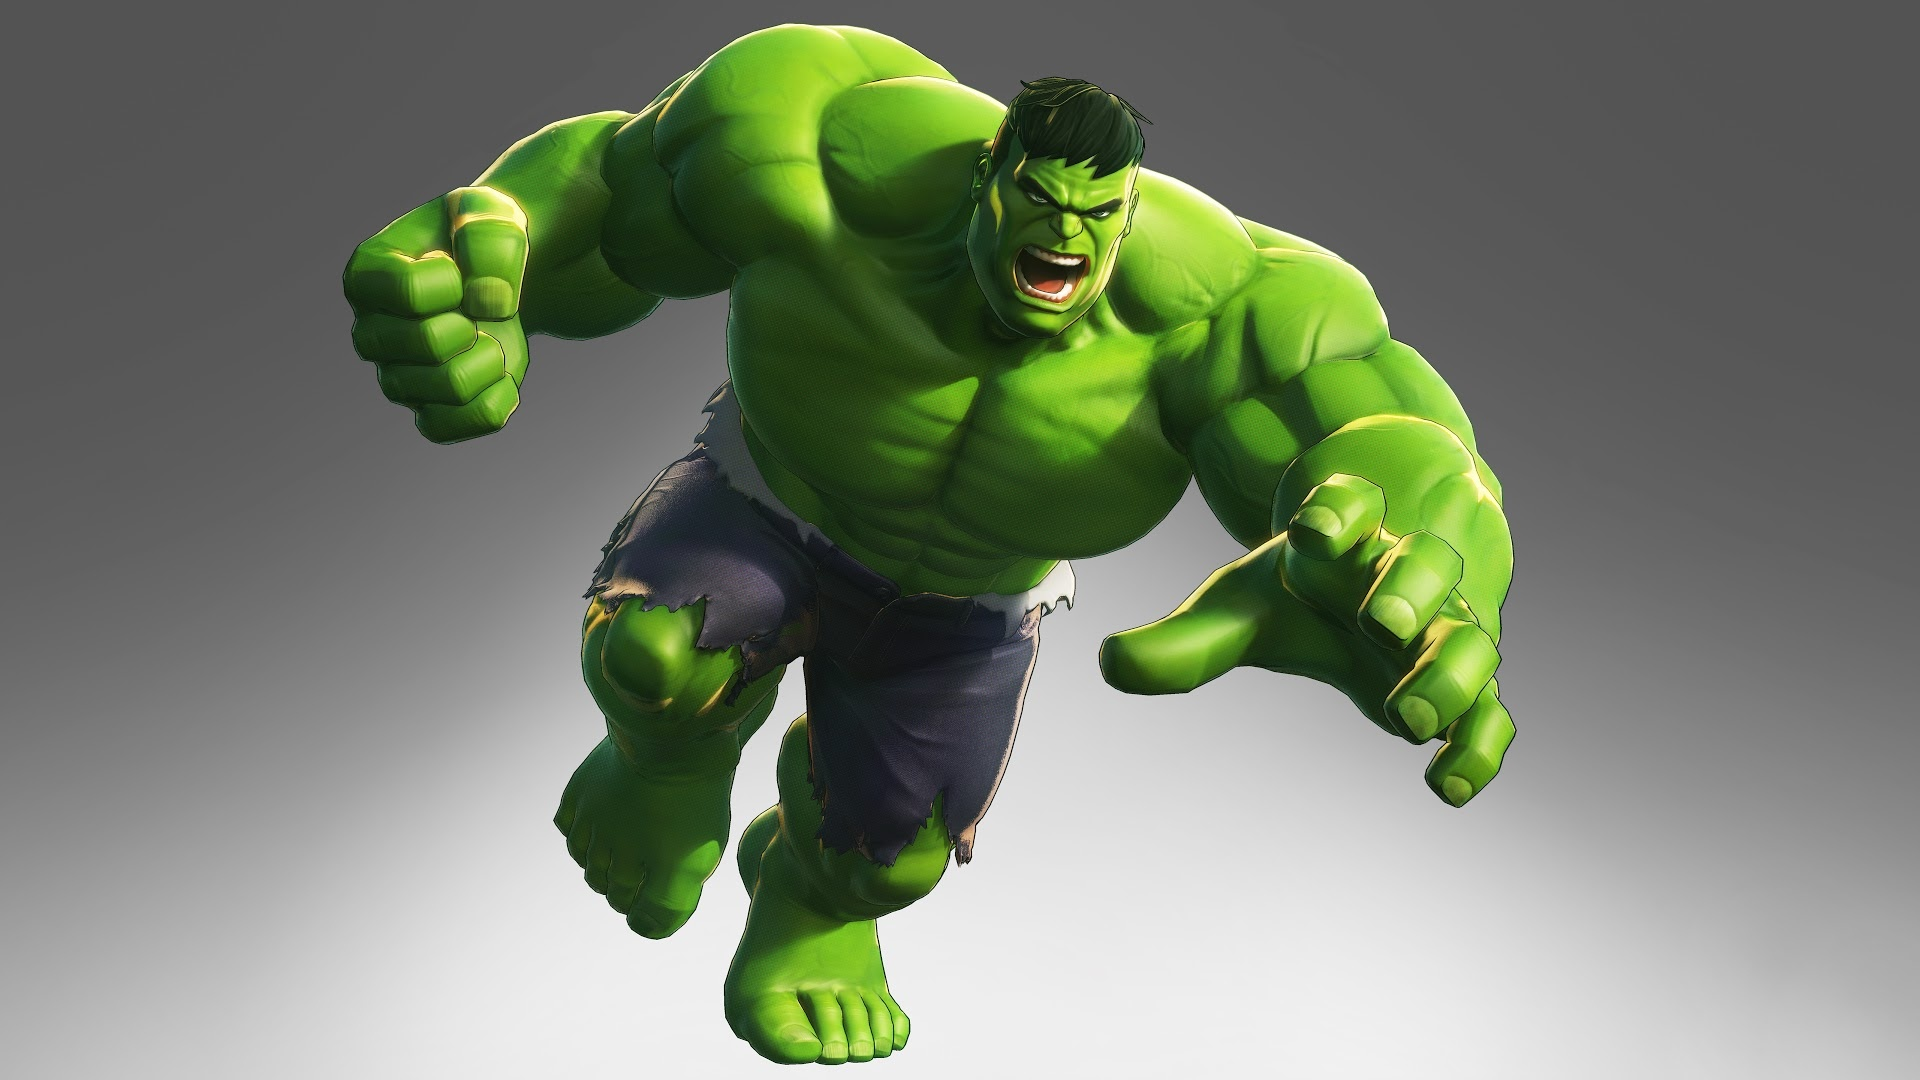 Hulk desktop wallpaper free download